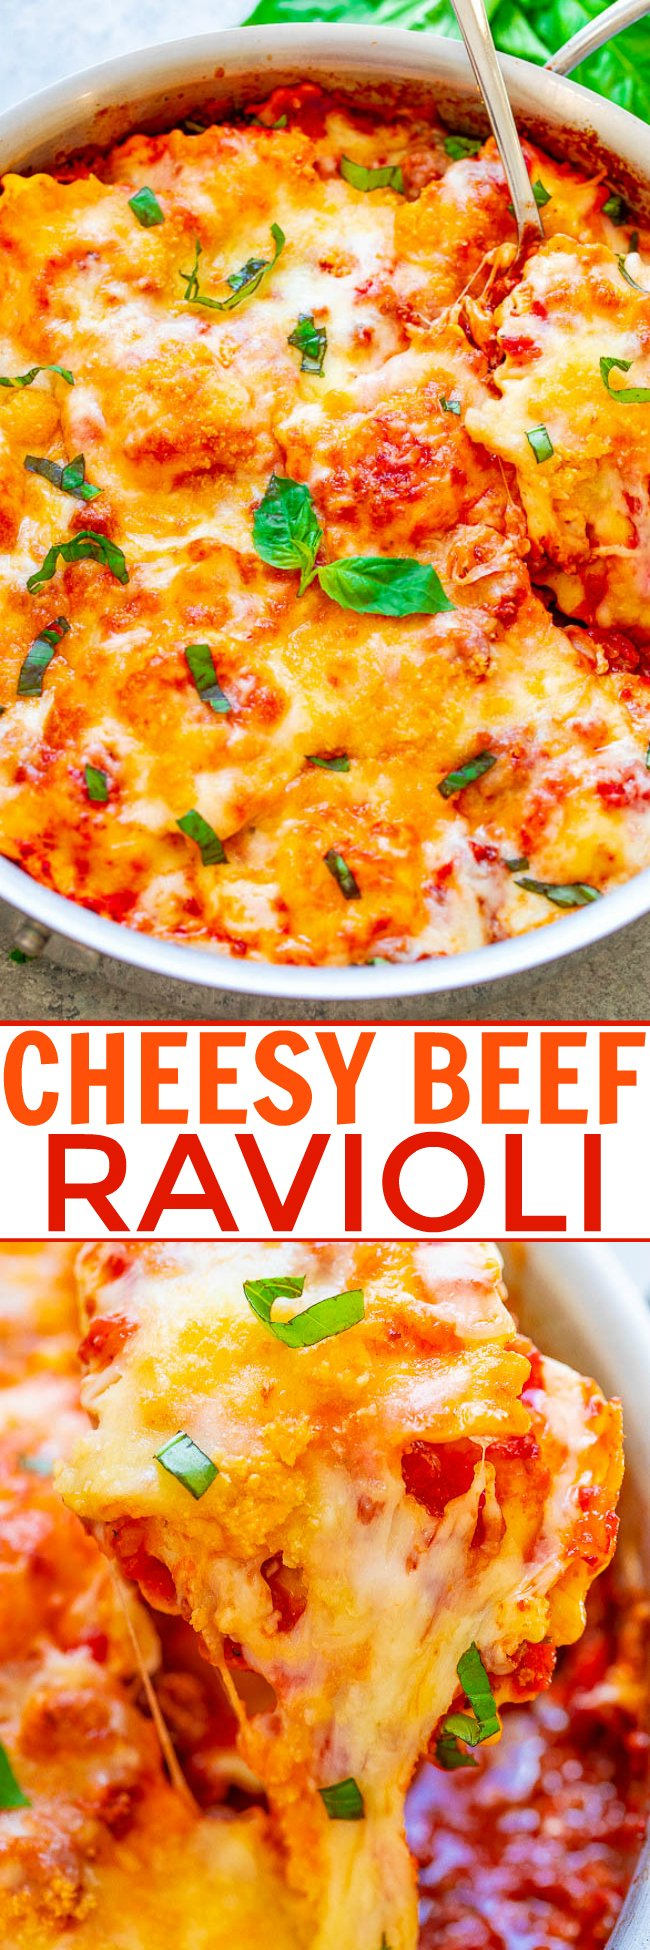 Cheesy Beef Ravioli - EASY, ready in 30 minutes, and it's pure cheesy COMFORT FOOD in every bite!! Makes a big batch and it's perfect for meal prep and planned freezer meals! A guaranteed family FAVORITE you'll want on repeat!!